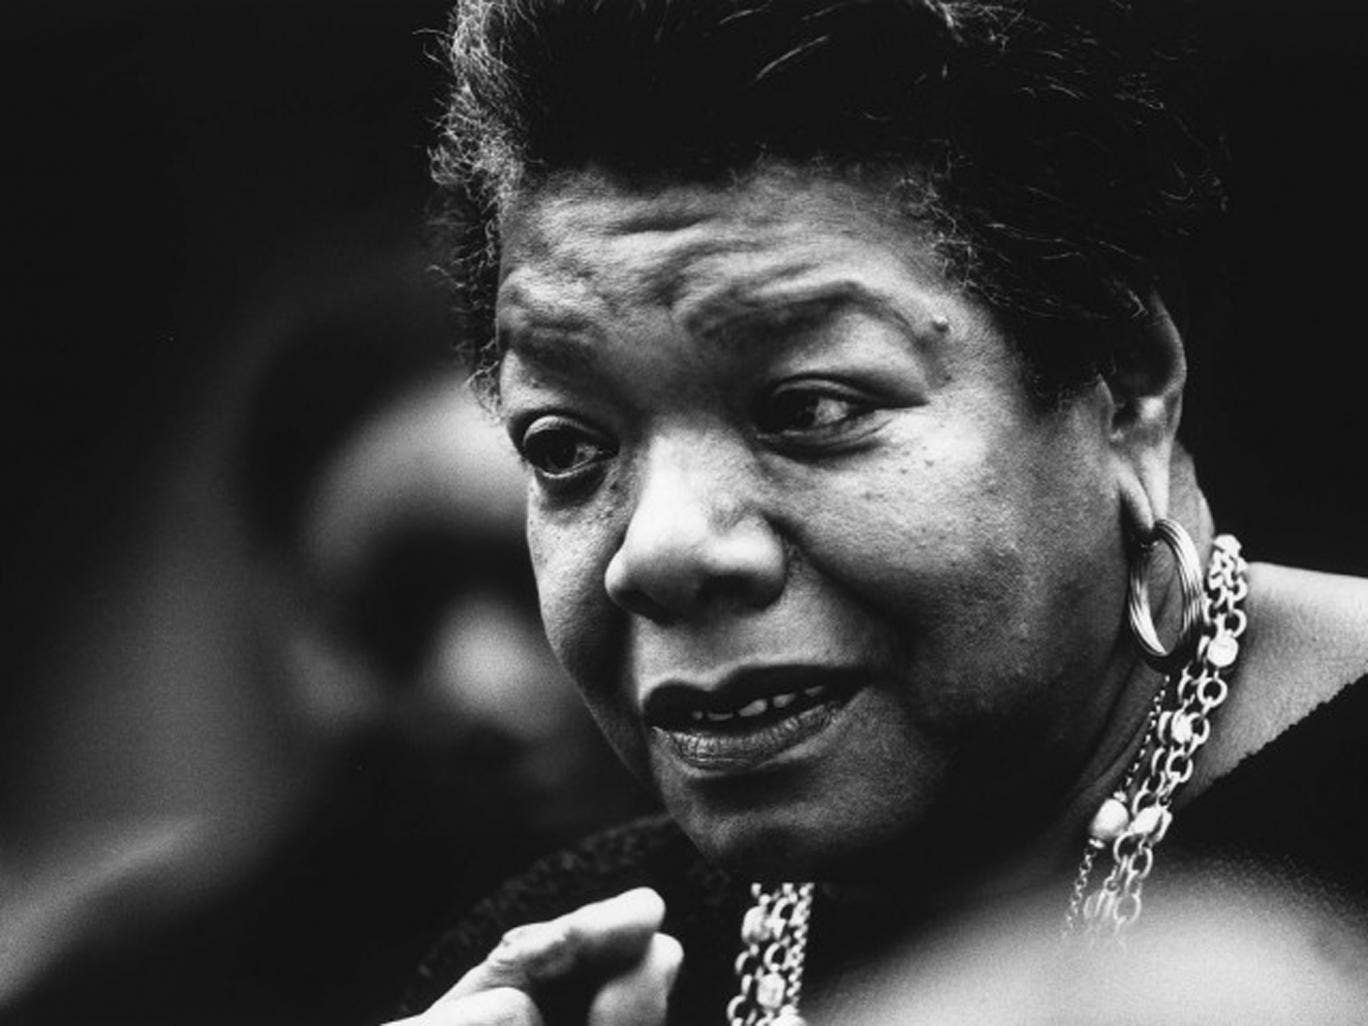 Speaking out: Maya Angelou, who died last week, was an exception to the norm for the descendants of slaves